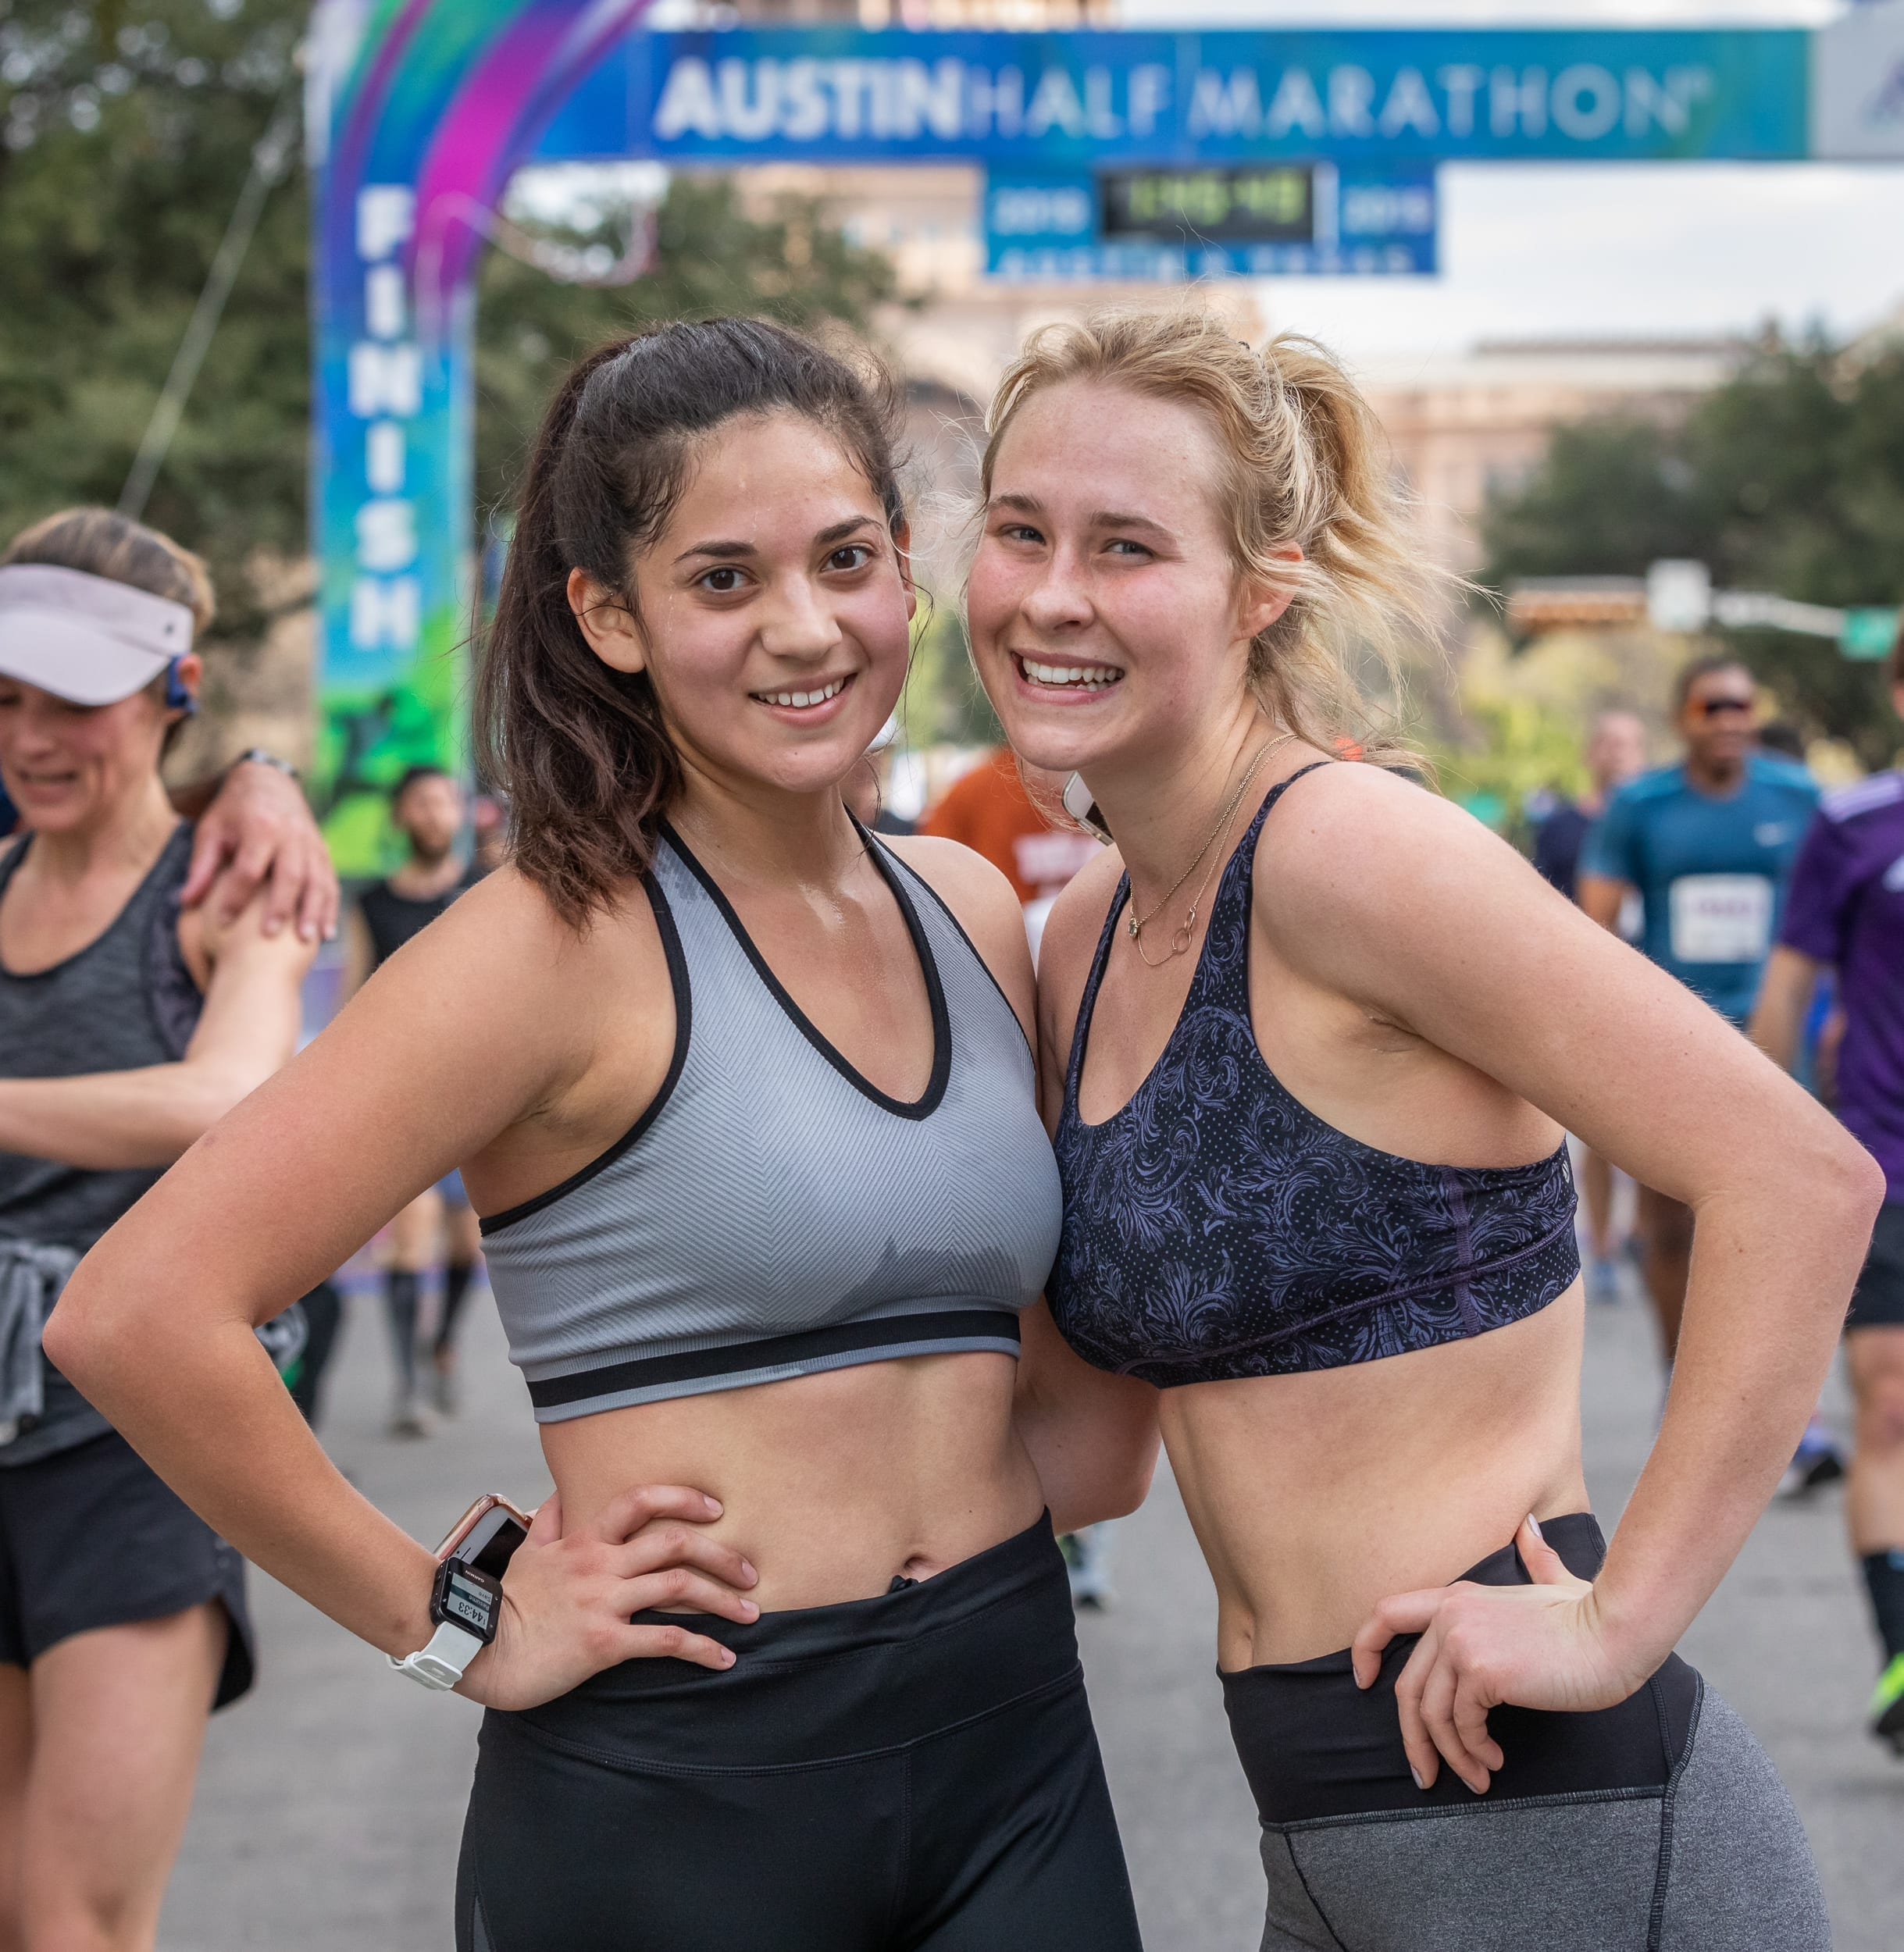 Friends pose the 2019 Austin Half Marathon finish line. Accountability is a great tip to stay motivated.